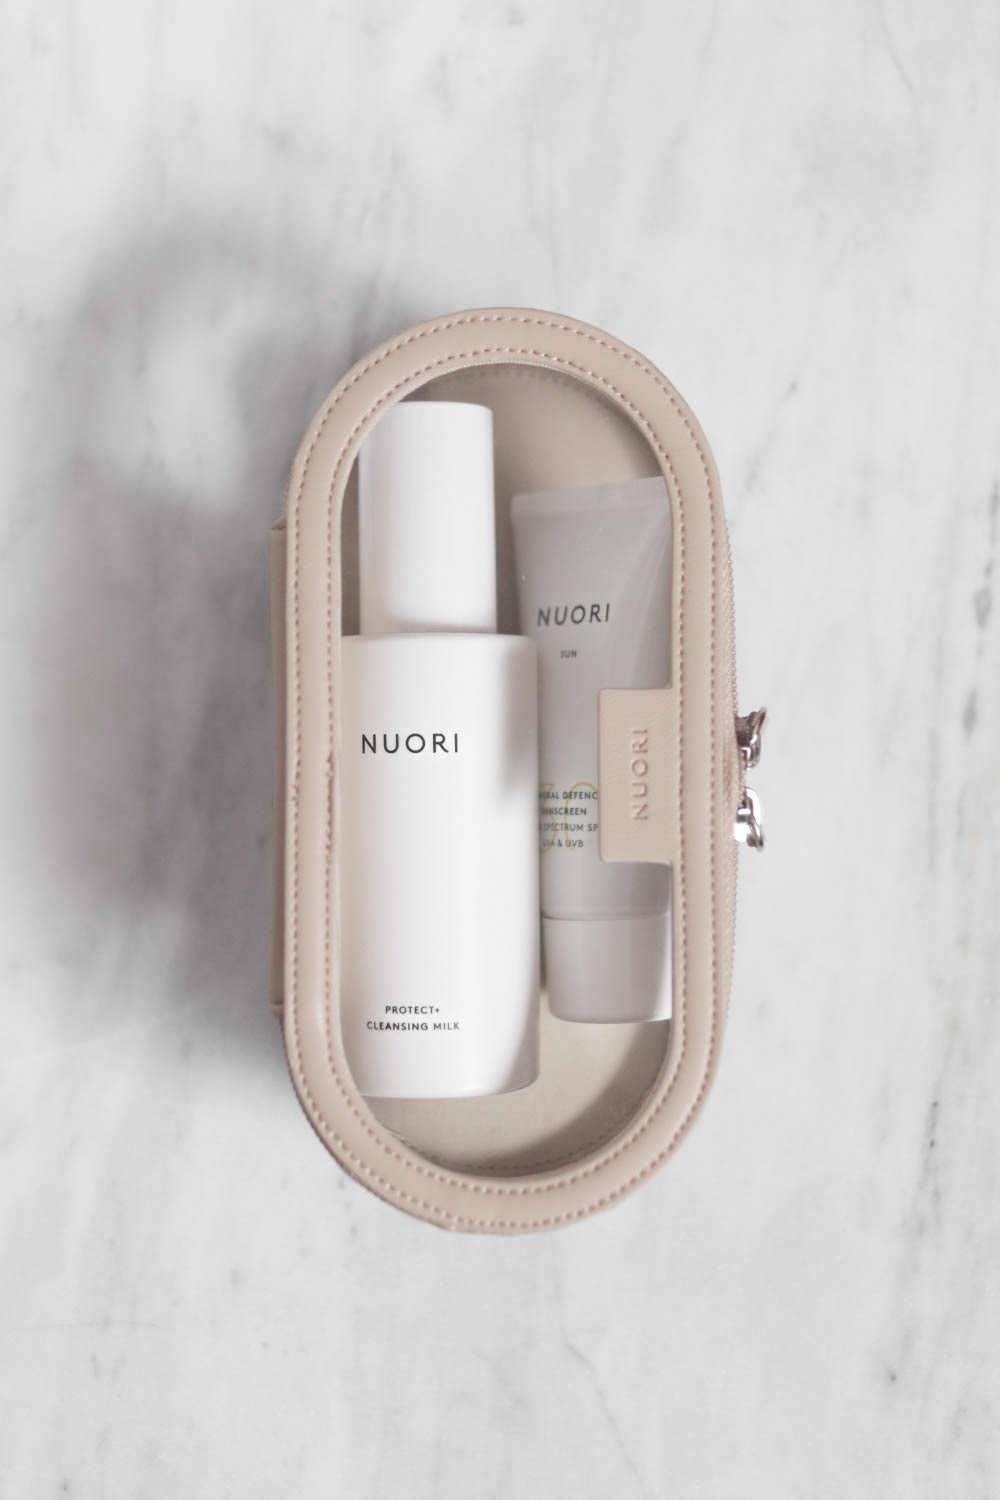 Nuori-Accessories-Getaway-Travel-Case-Review